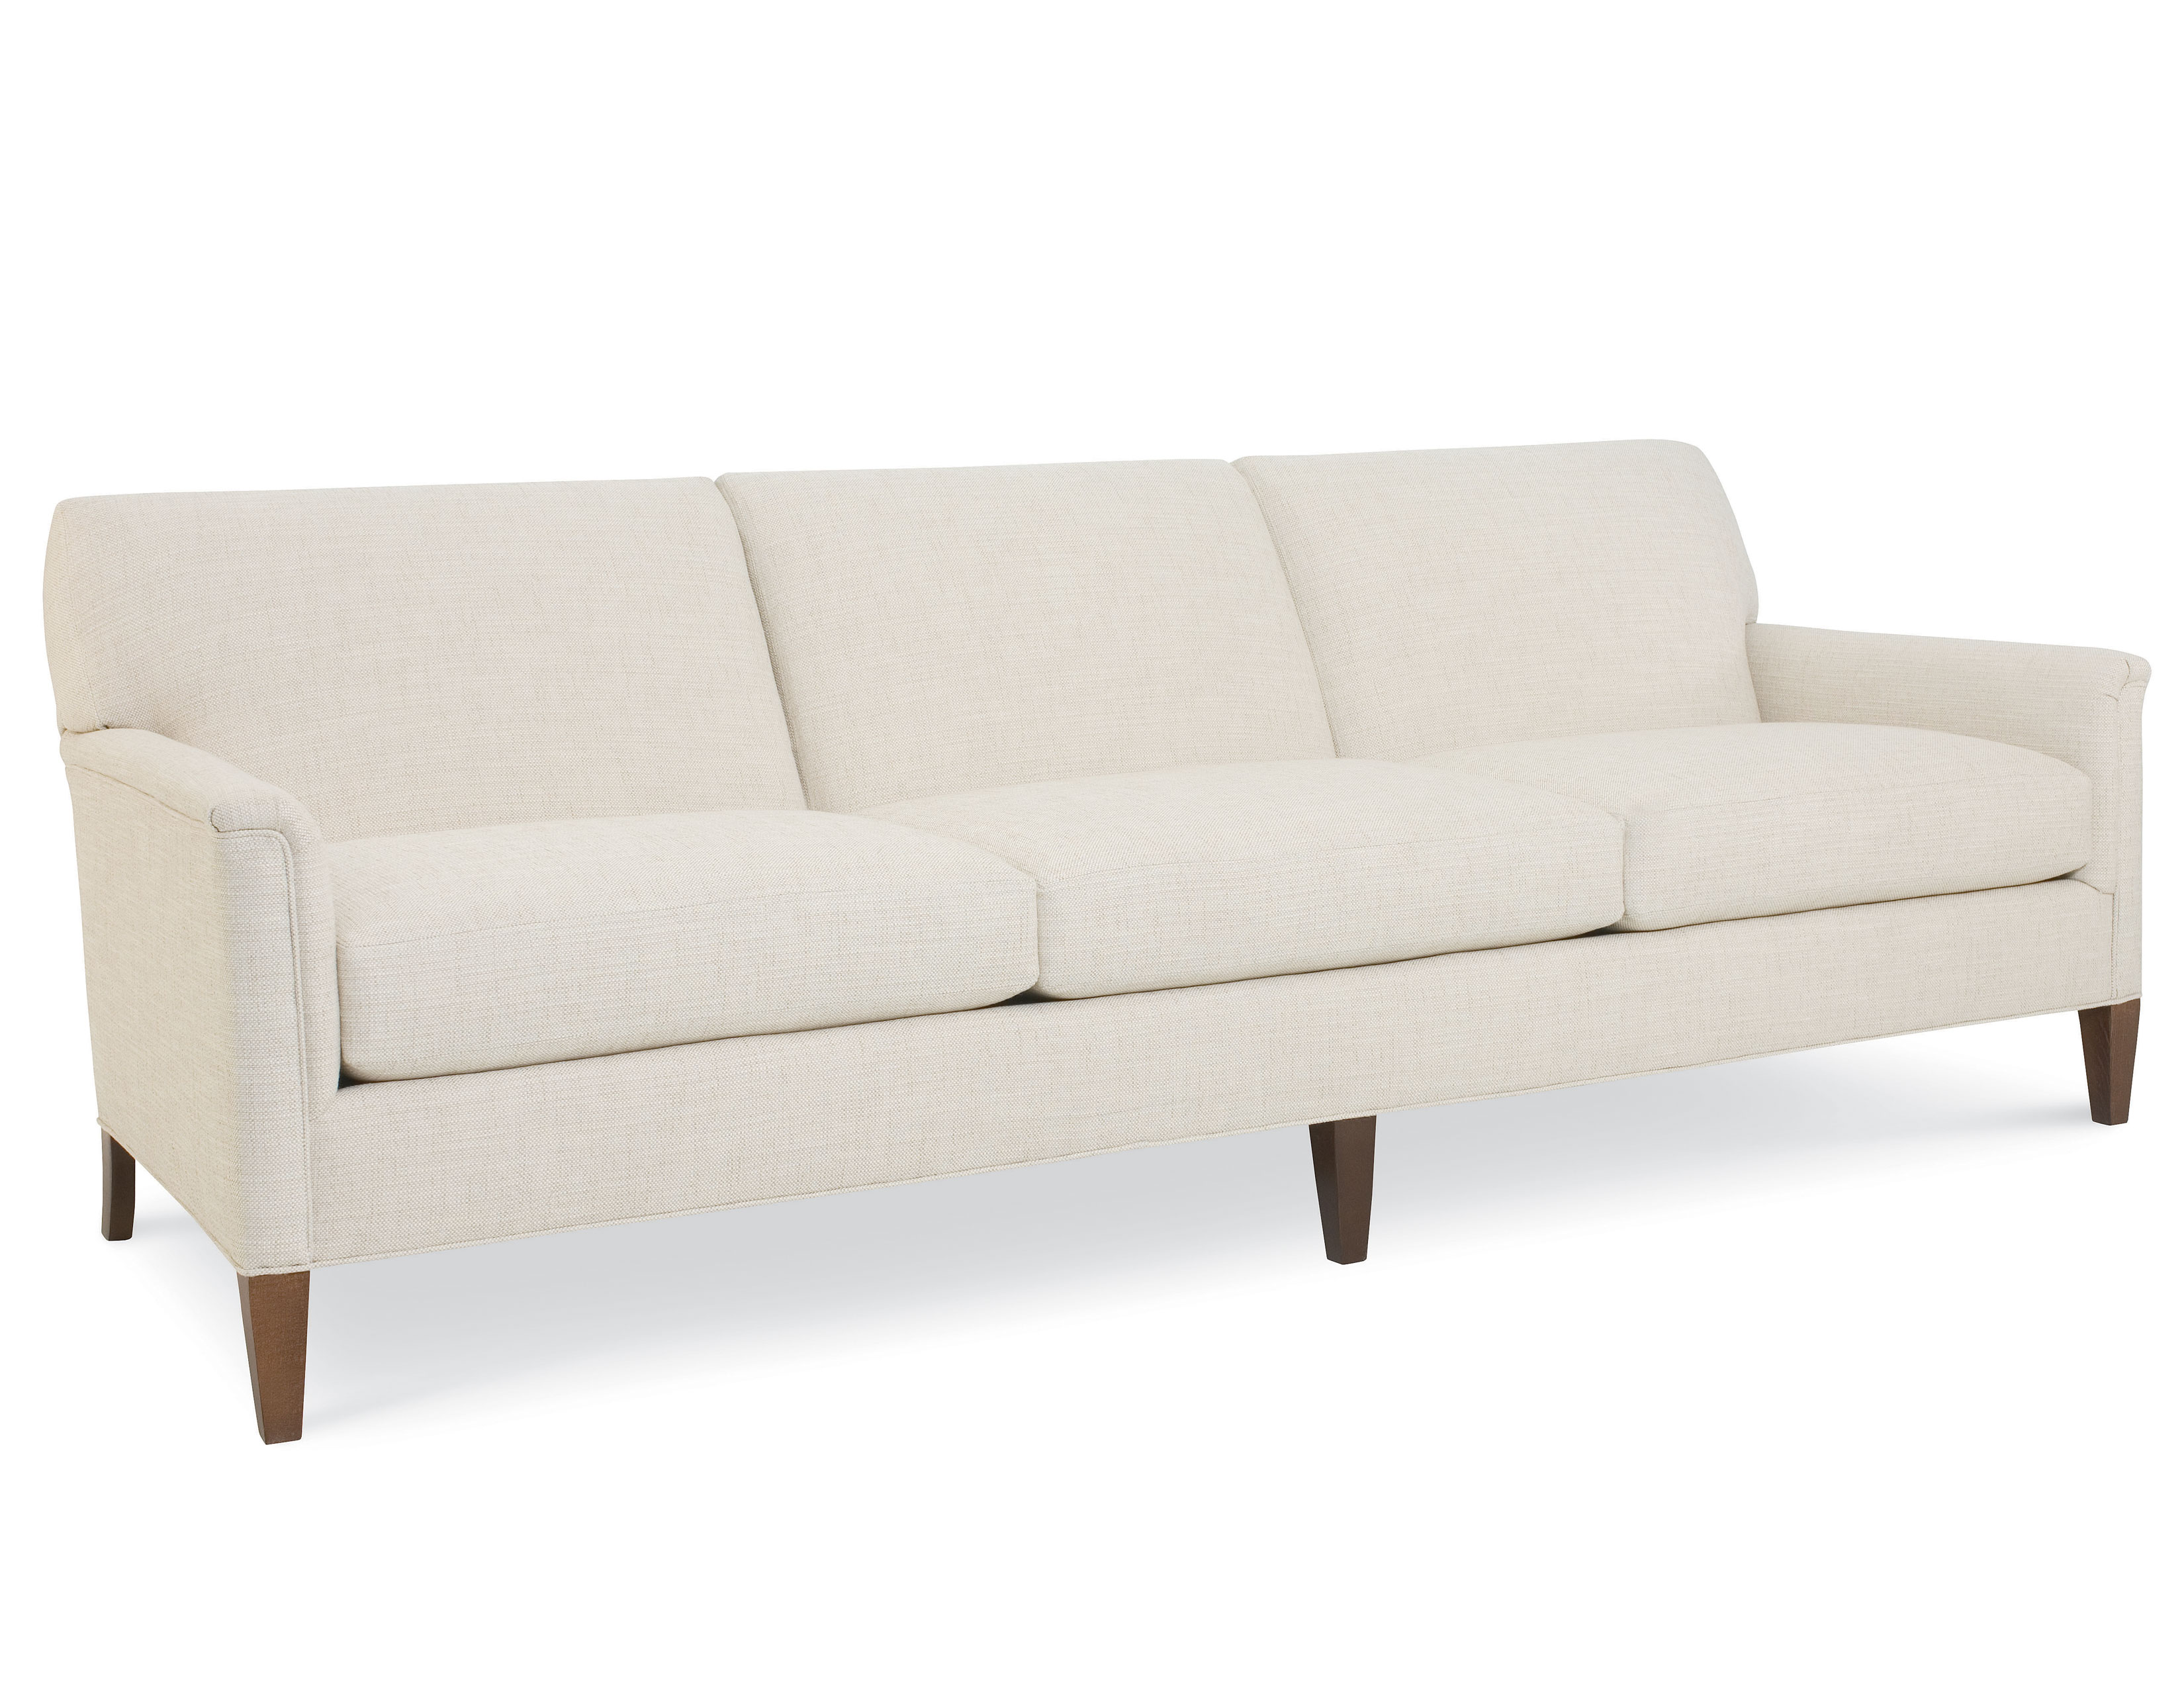 Amazing Digby 72 83 Or 95 Sofa Sofas And Sectionals Gmtry Best Dining Table And Chair Ideas Images Gmtryco